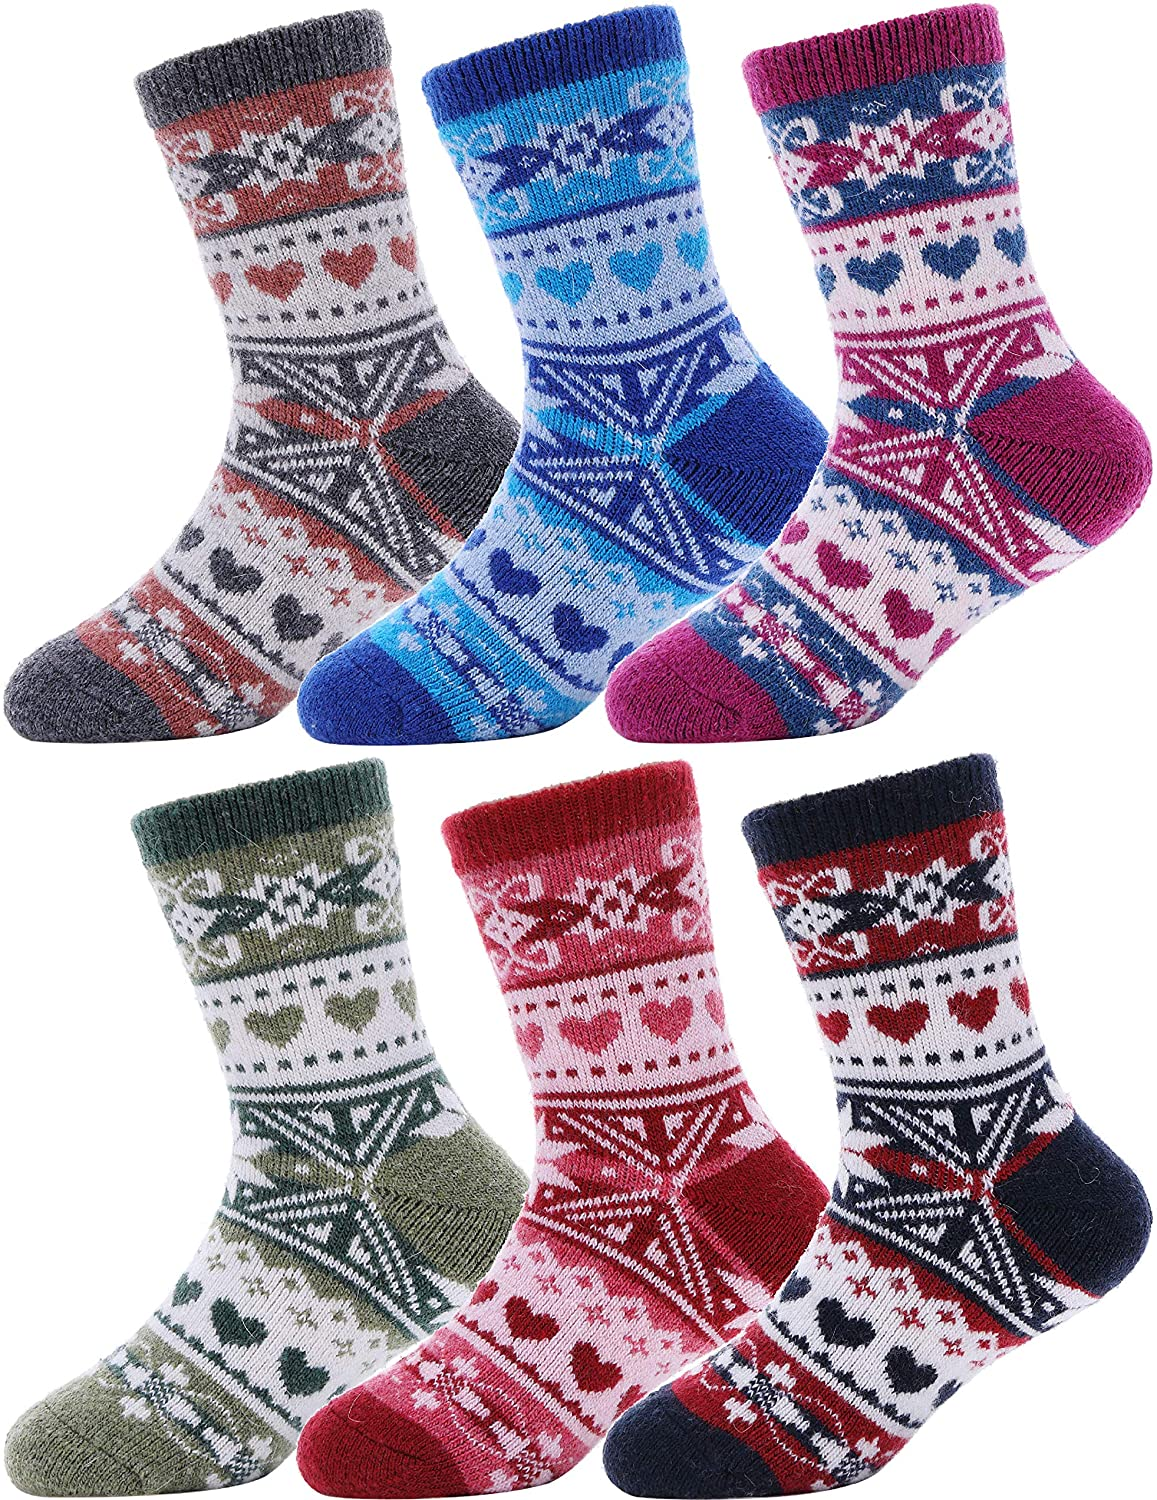 Boys Girls Wool Socks For Child Kid Toddler Thermal Warm Thick Cotton Winter Crew Socks 6 Pairs